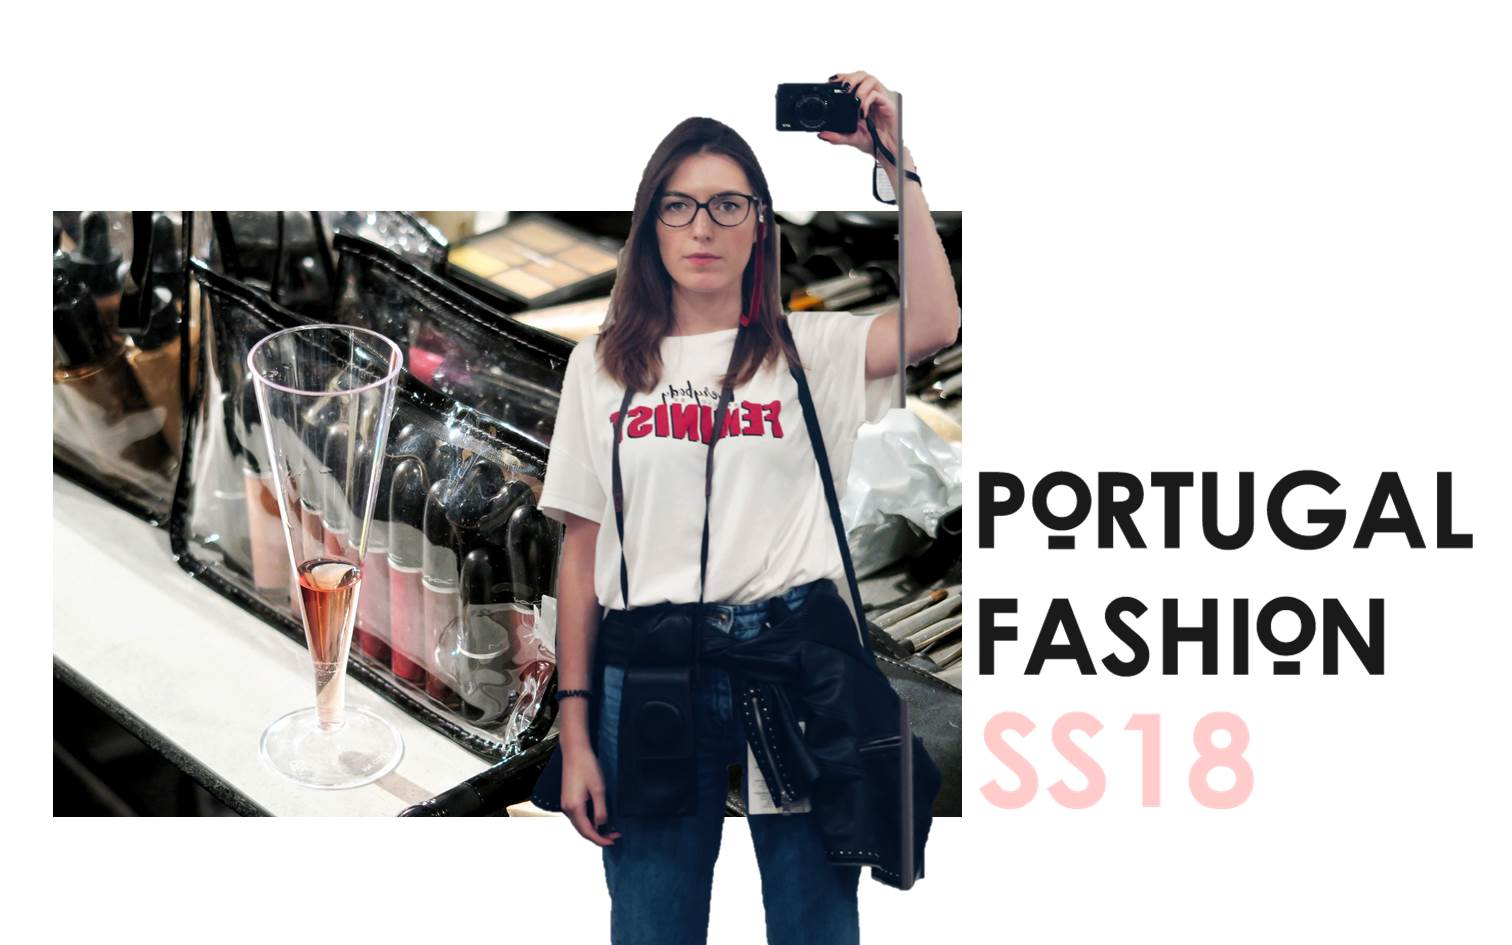 liliana marques; make-up; blogger; portugal fashion ss18